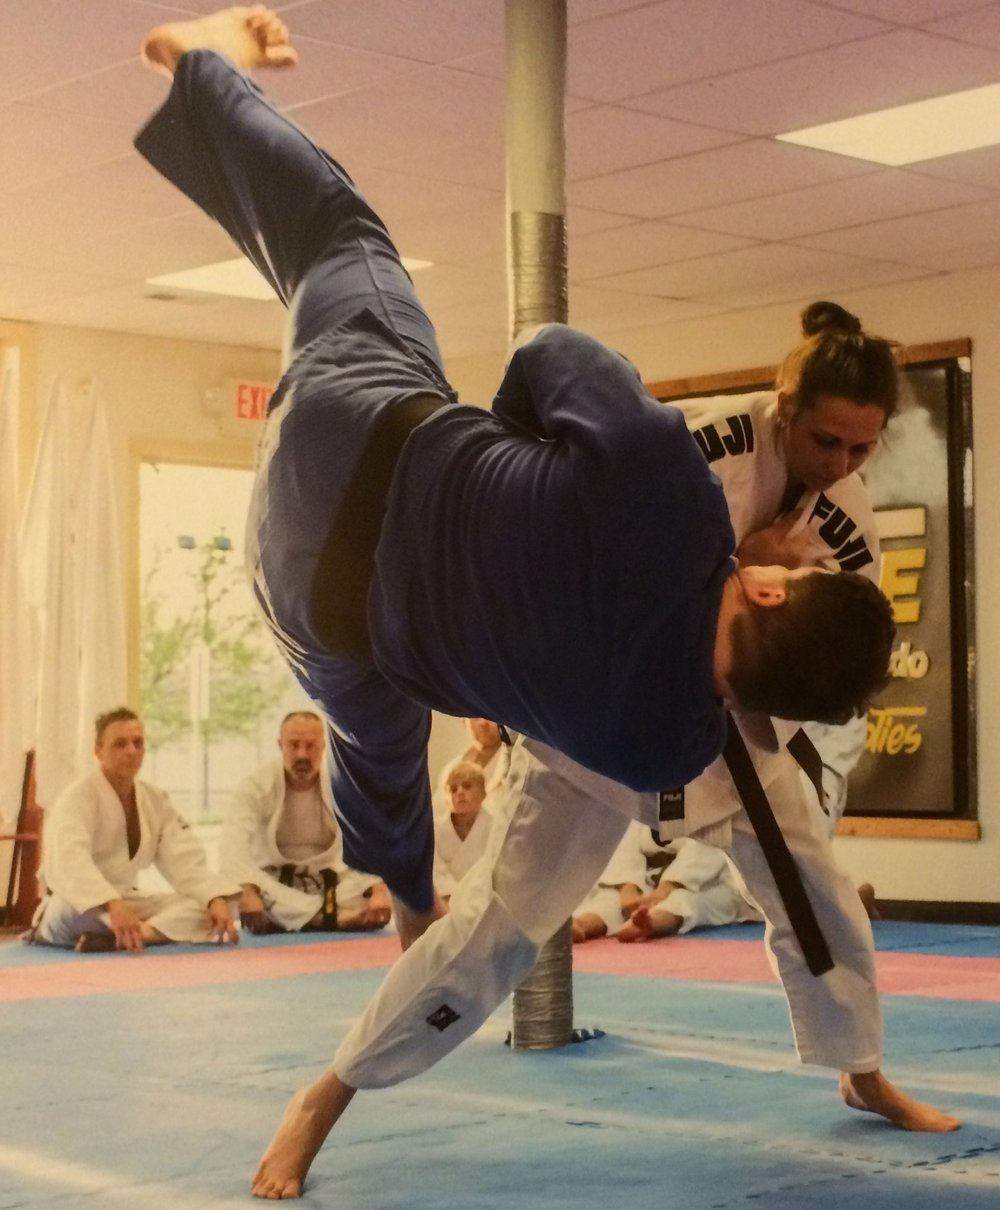 Judo is a style where size does not mean instant victory, as true technique overcomes all.